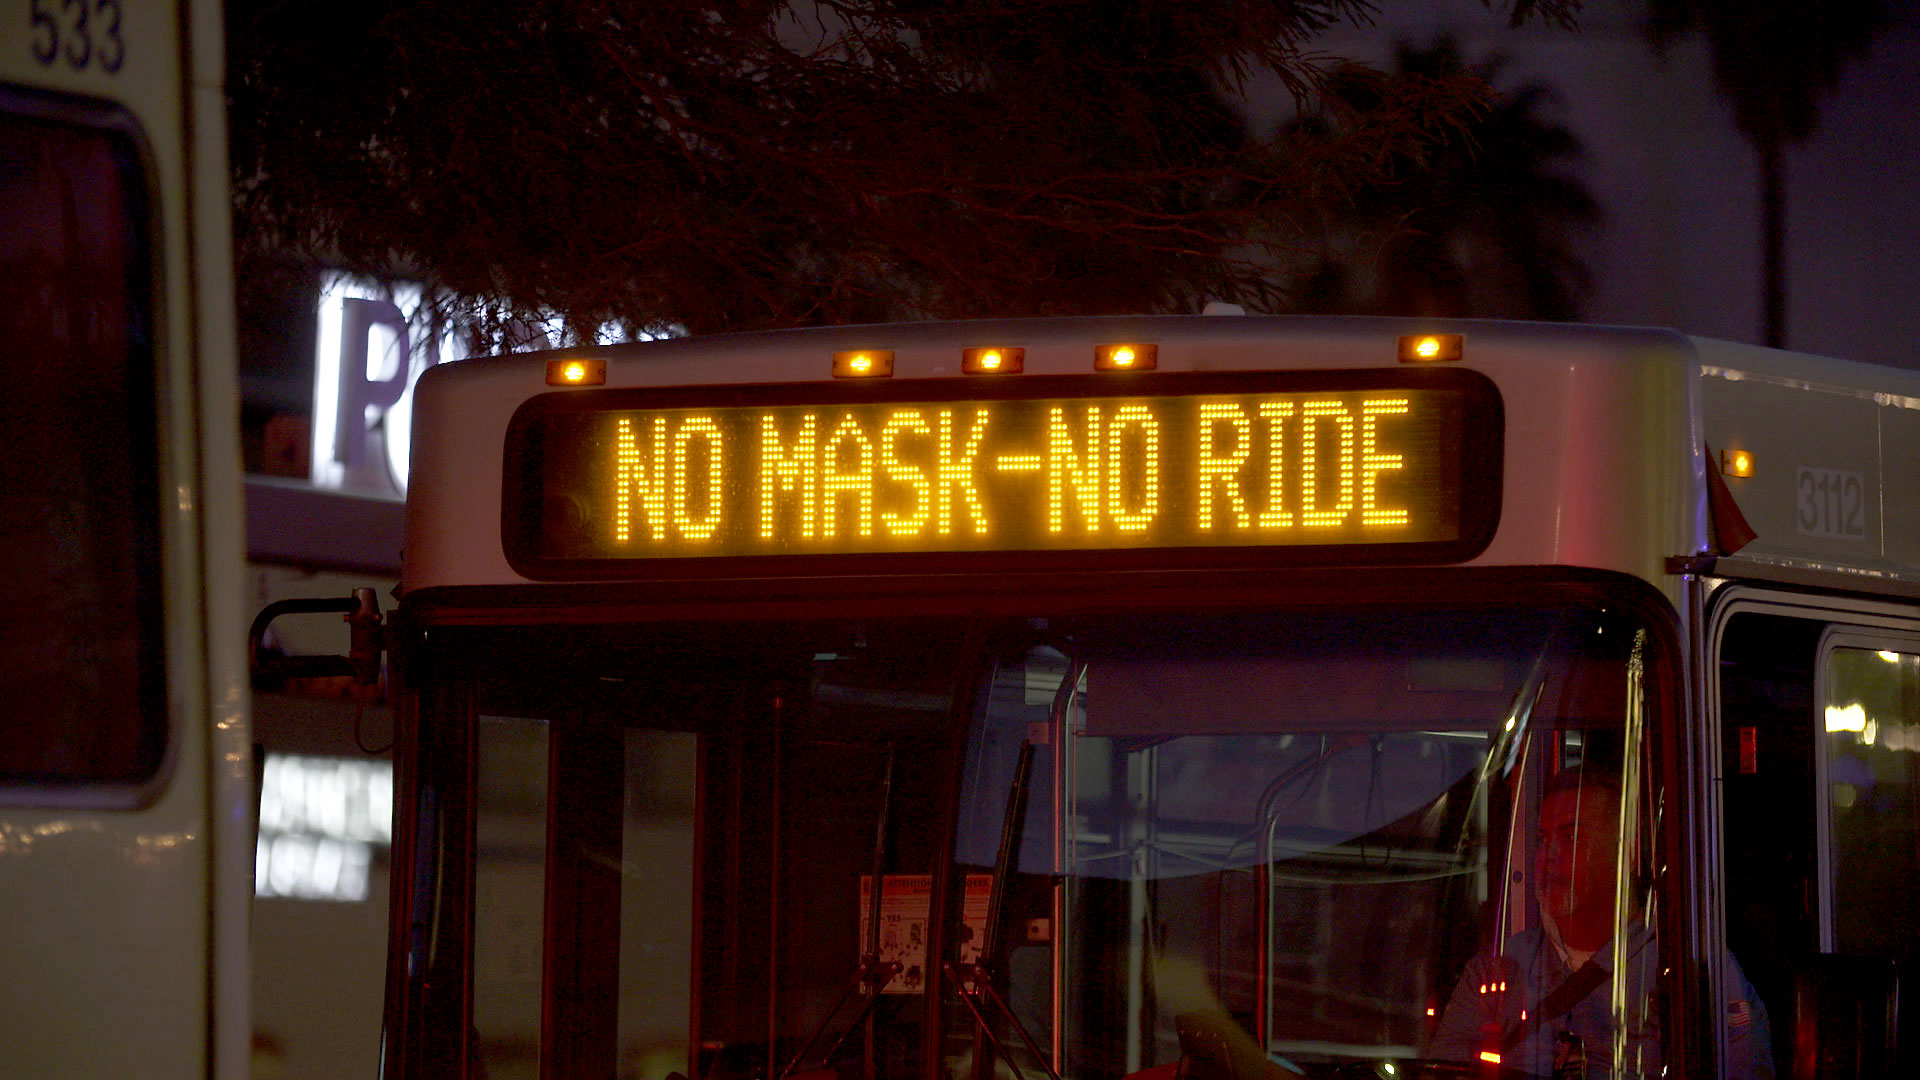 A Sun Tran bus in downtown Tucson notifies passengers that a mask is required to board. November 2020.